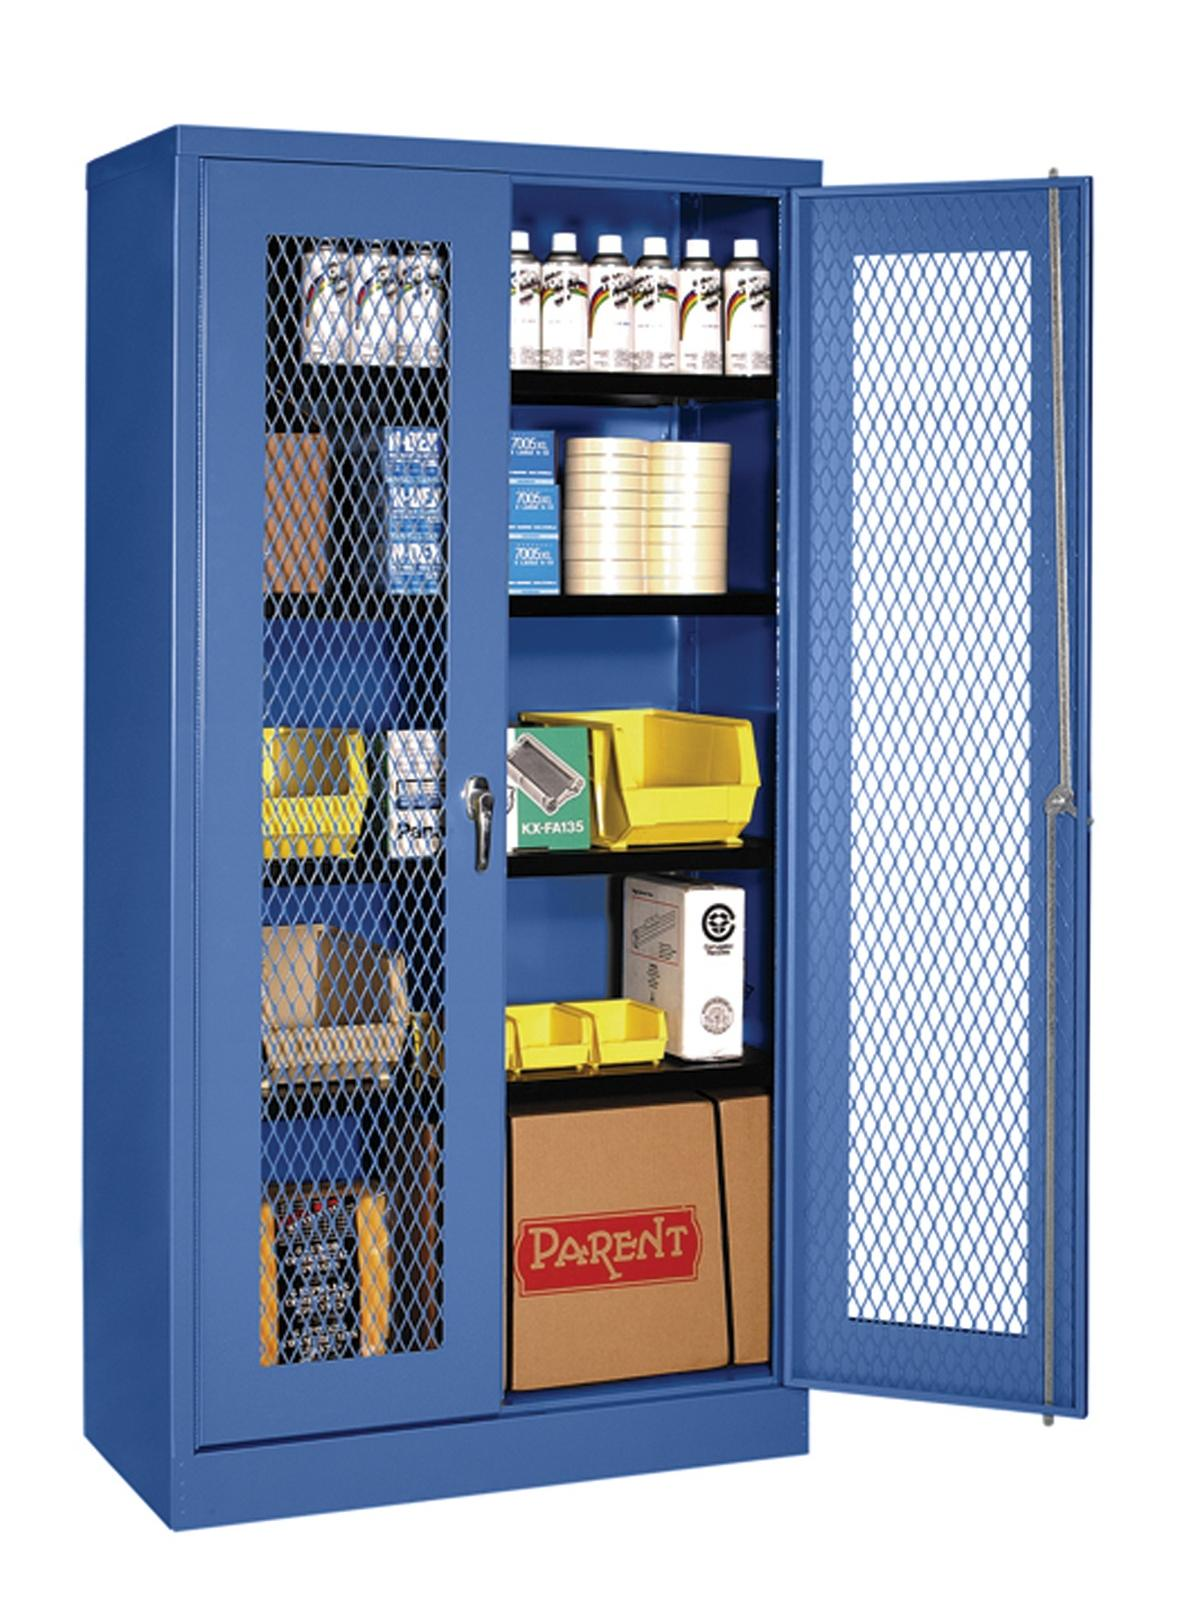 HEAVYDUTY VISUAL STORAGE CABINETS at Nationwide